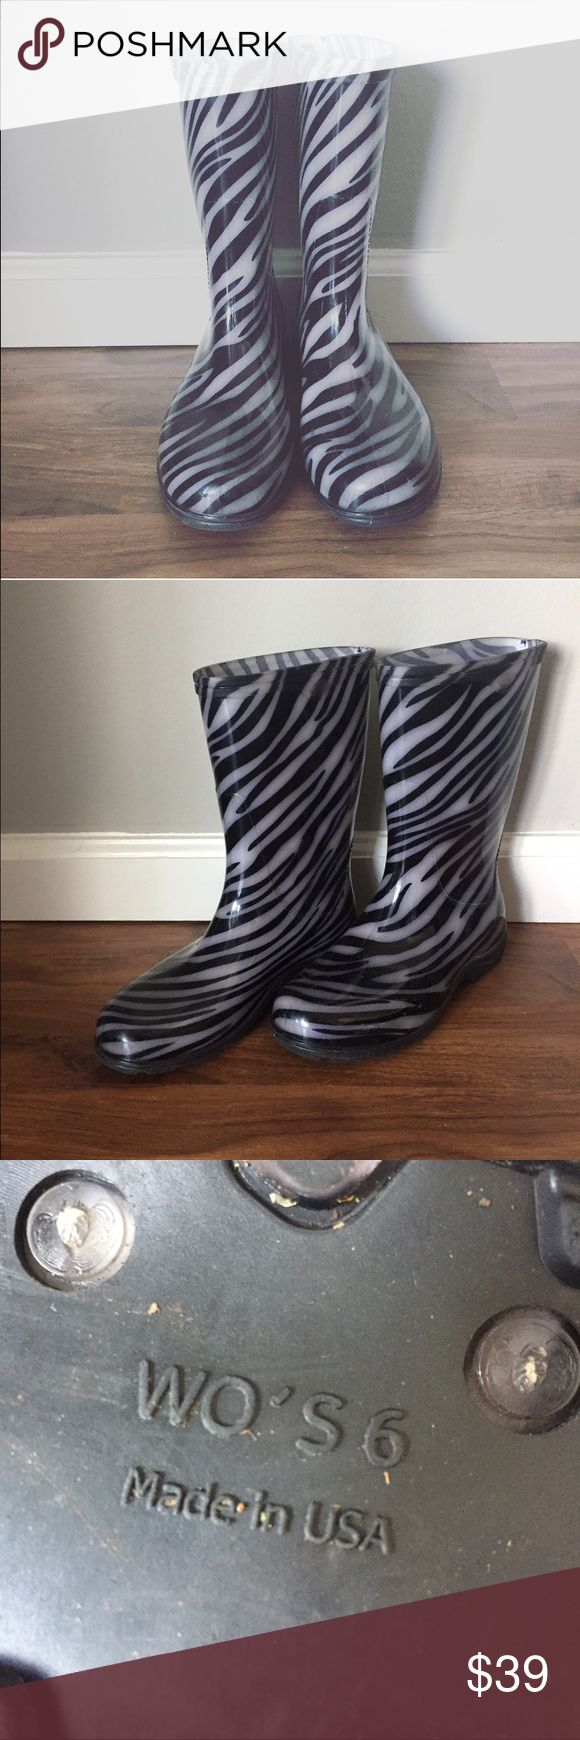 Sloggers rain boots like new animal print Like new condition. Worn once. Zebra, black, grey. Made in USA. Rubber. Can be kids / girls. sloggers Shoes Winter & Rain Boots